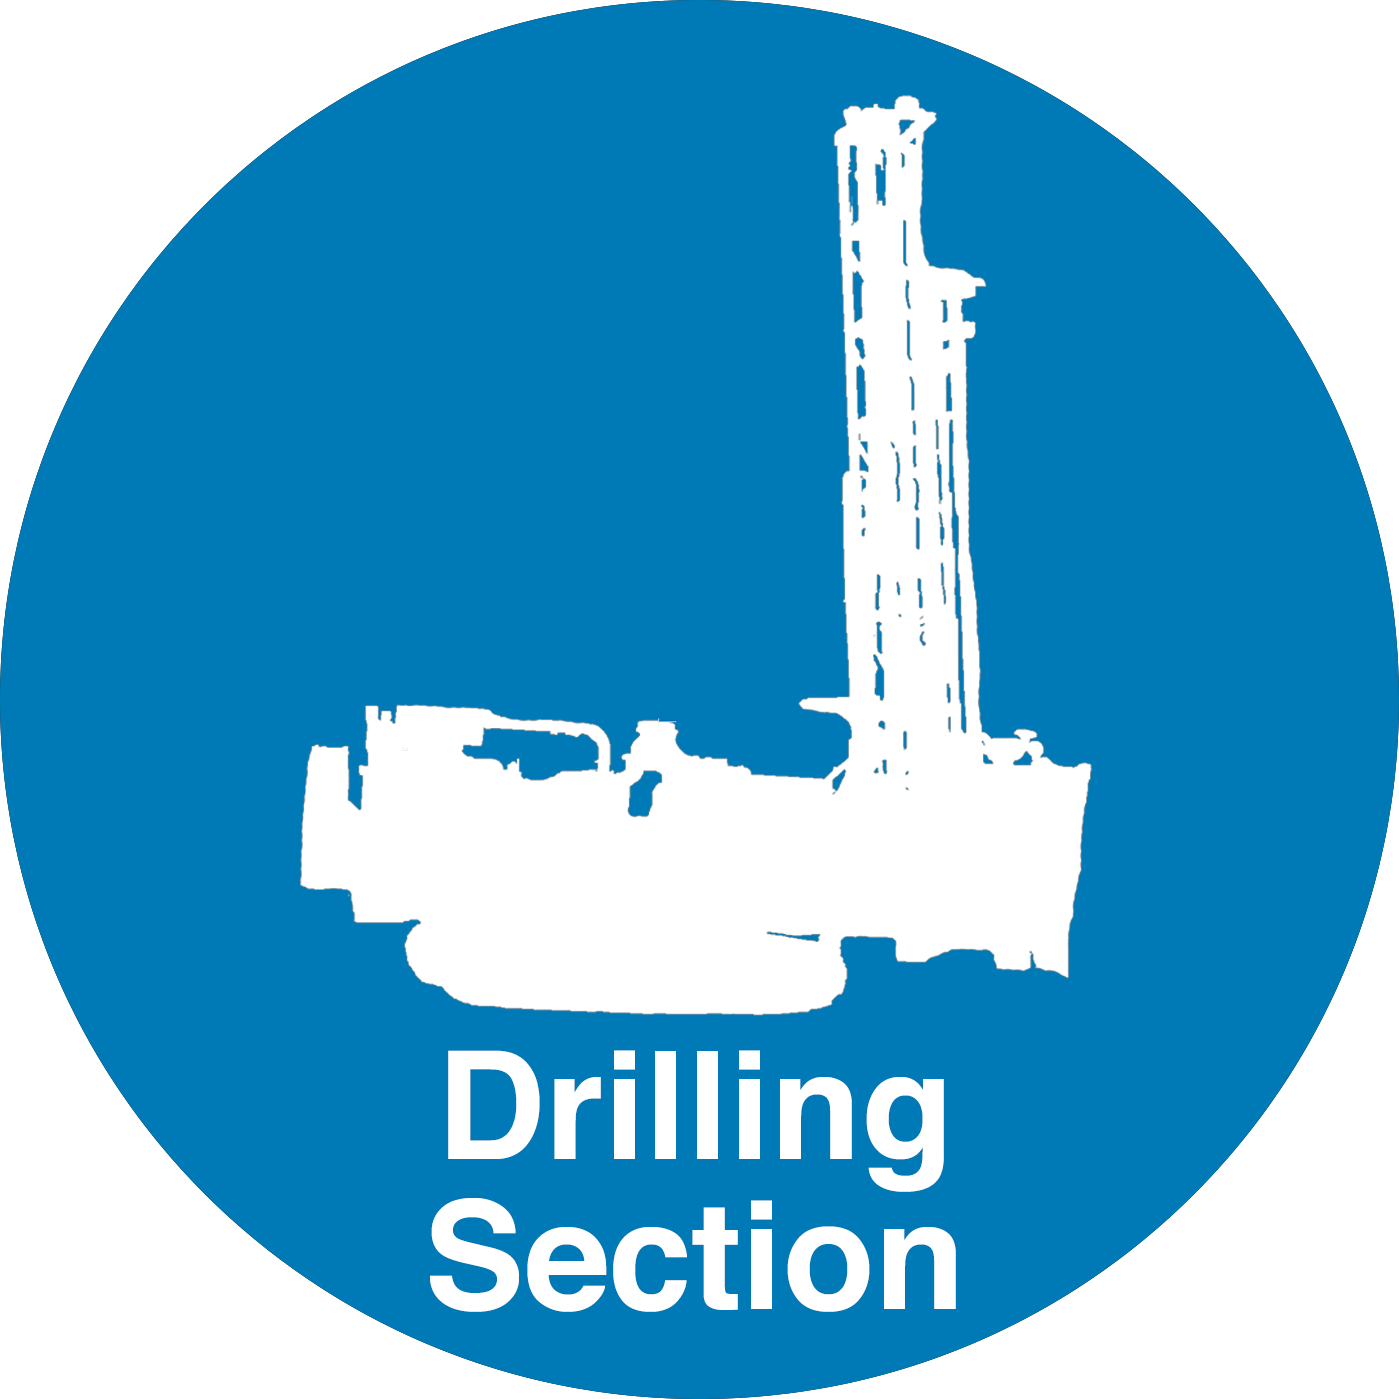 Drilling Section